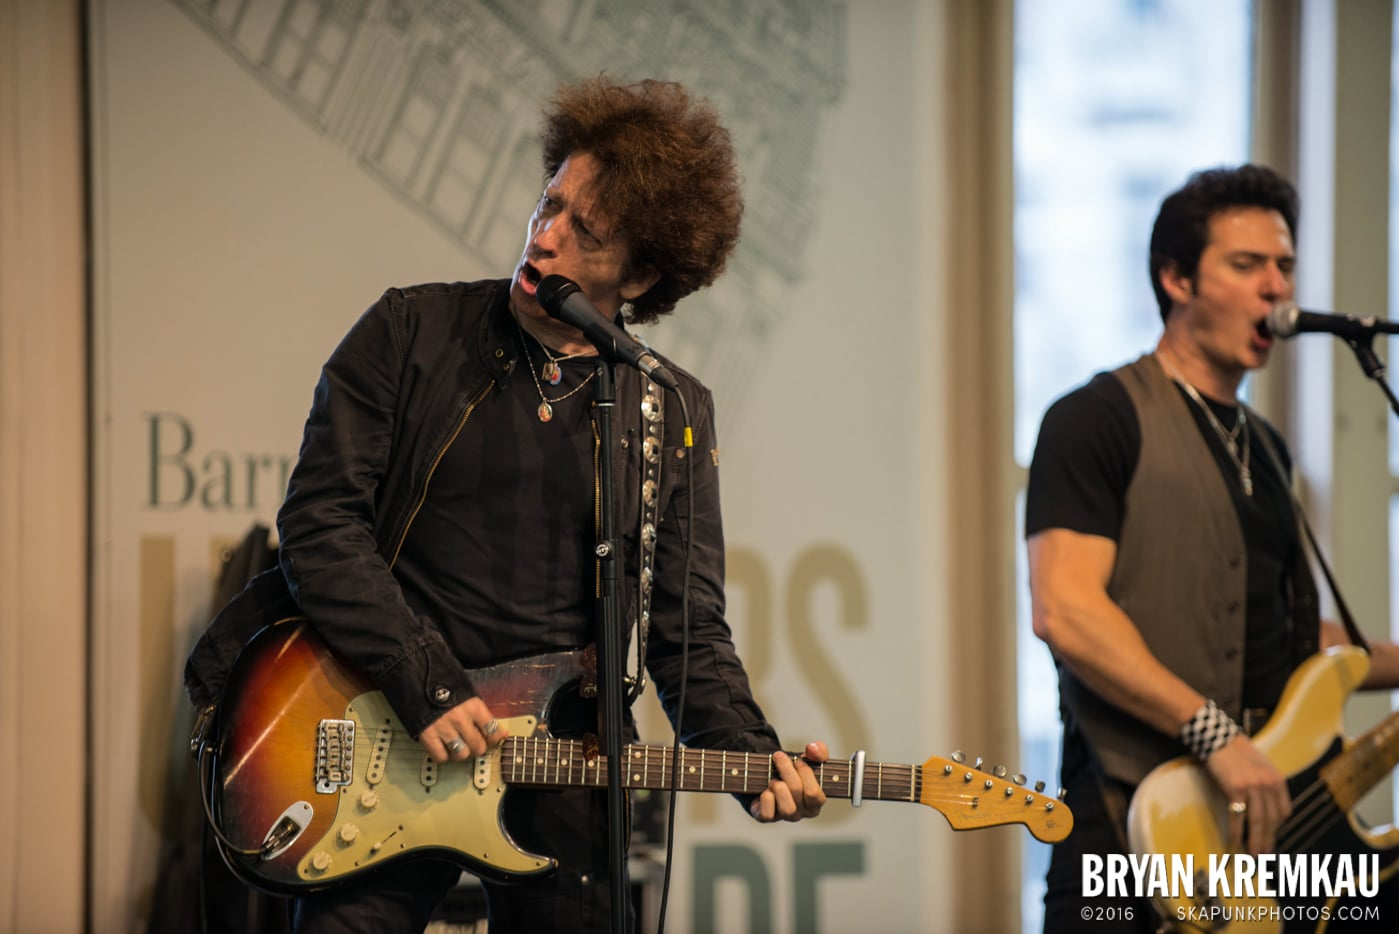 Willie Nile @ Barnes & Noble Union Square, NYC - June 25th 2013 (12)